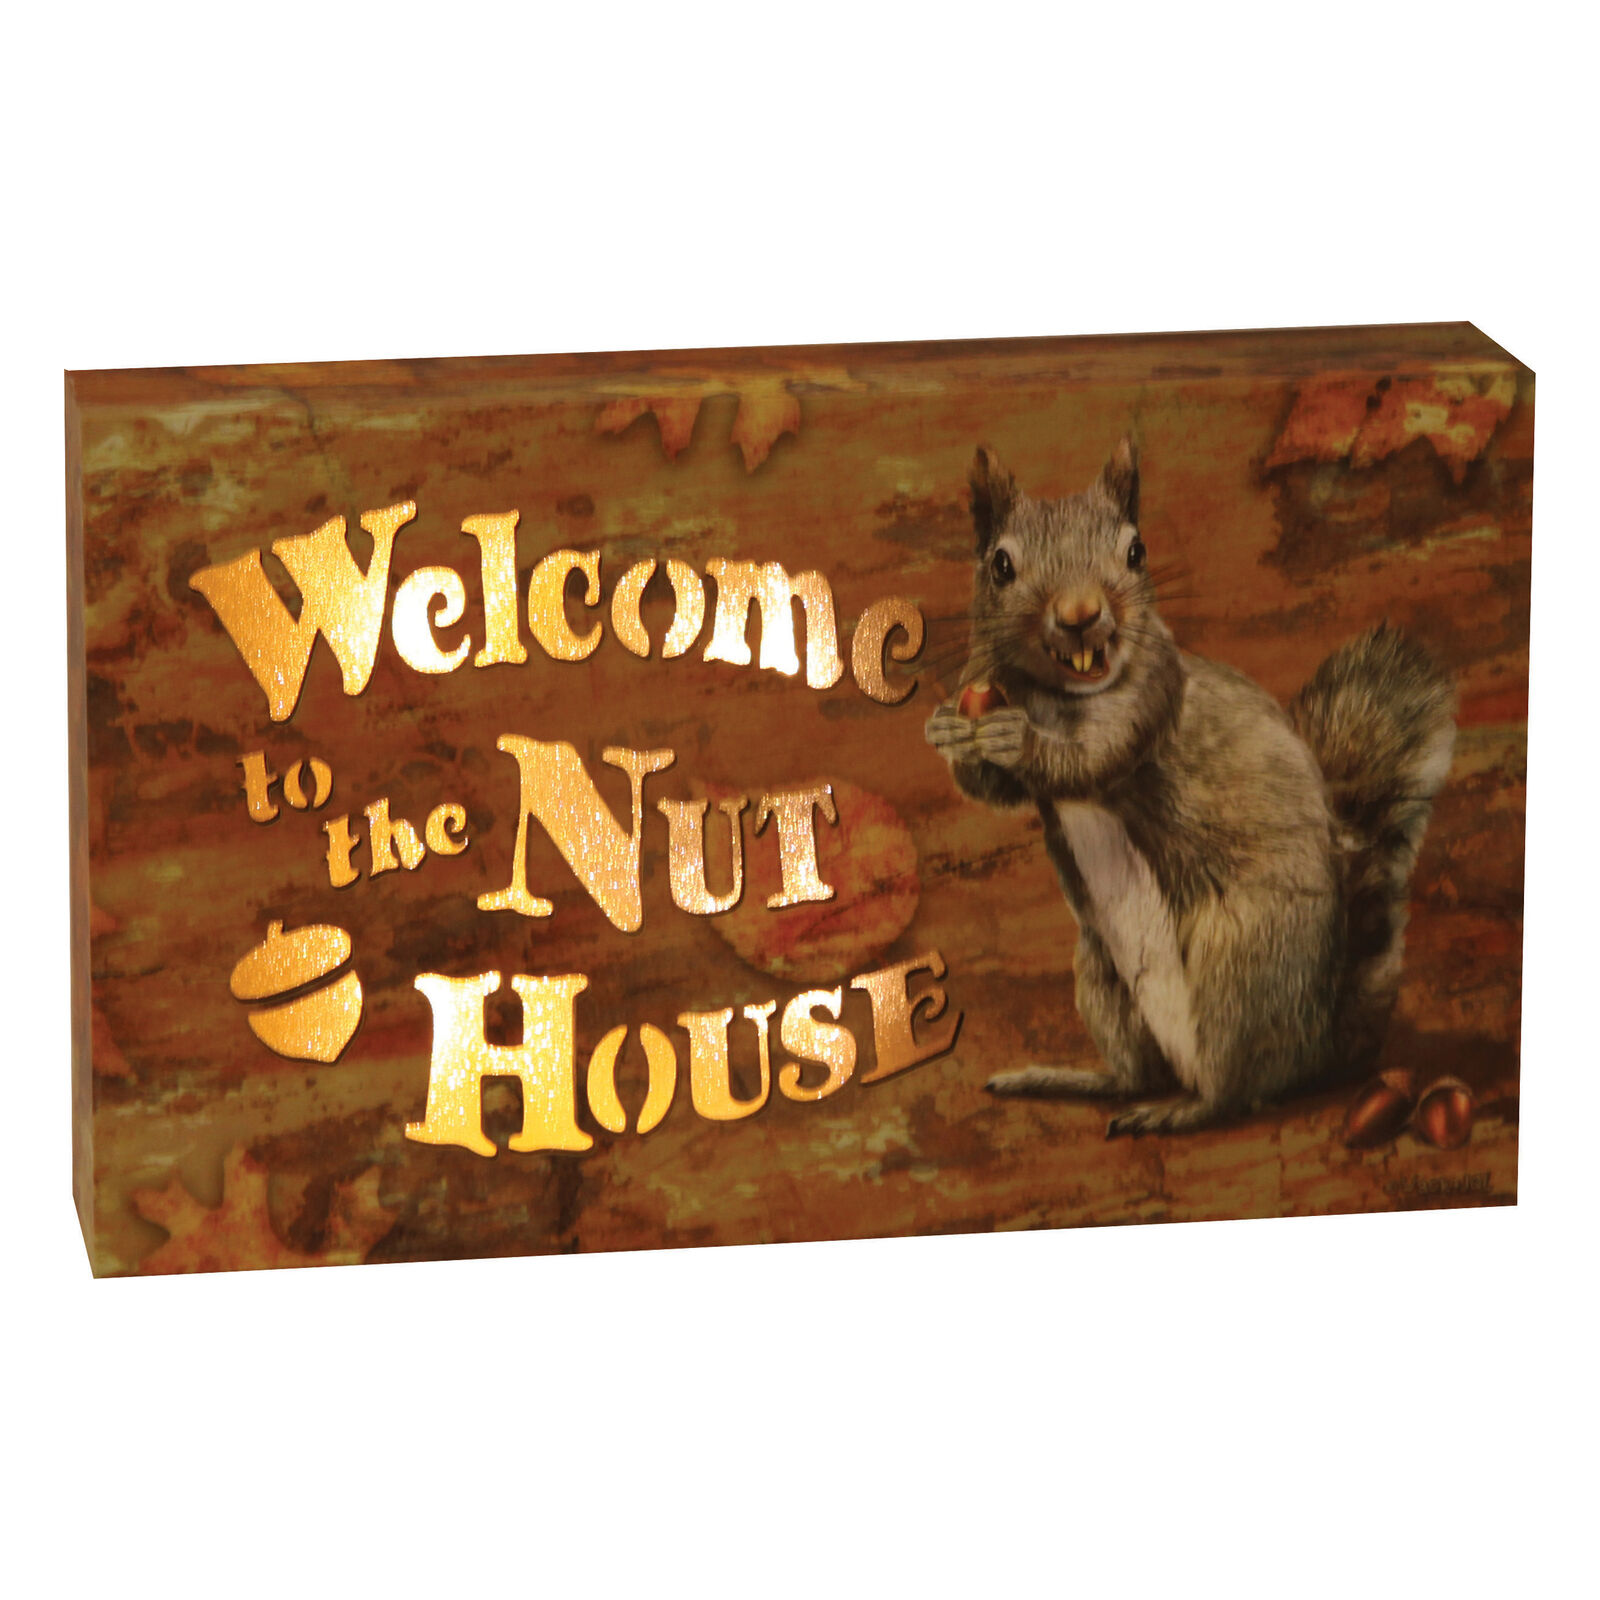 LED Box 8in x 5in - Nut House